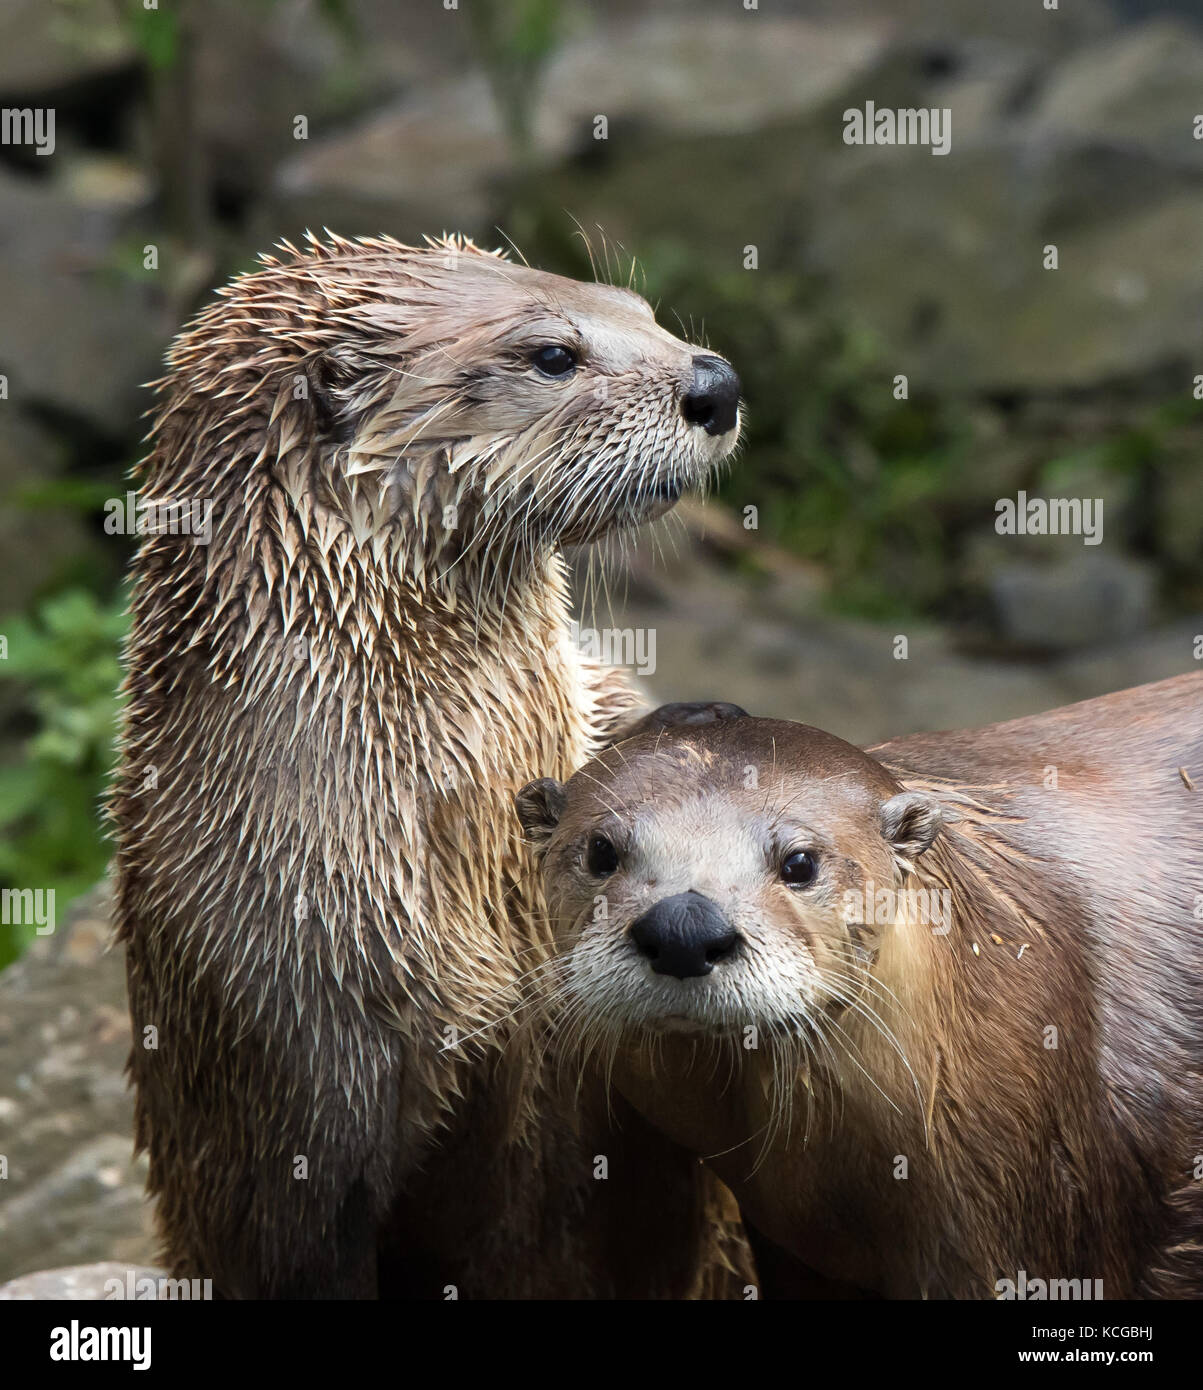 Close up of two North American river otters (Lontra canadensis) in captivity at Slimbridge Wetland Reserve, UK, Stock Photo